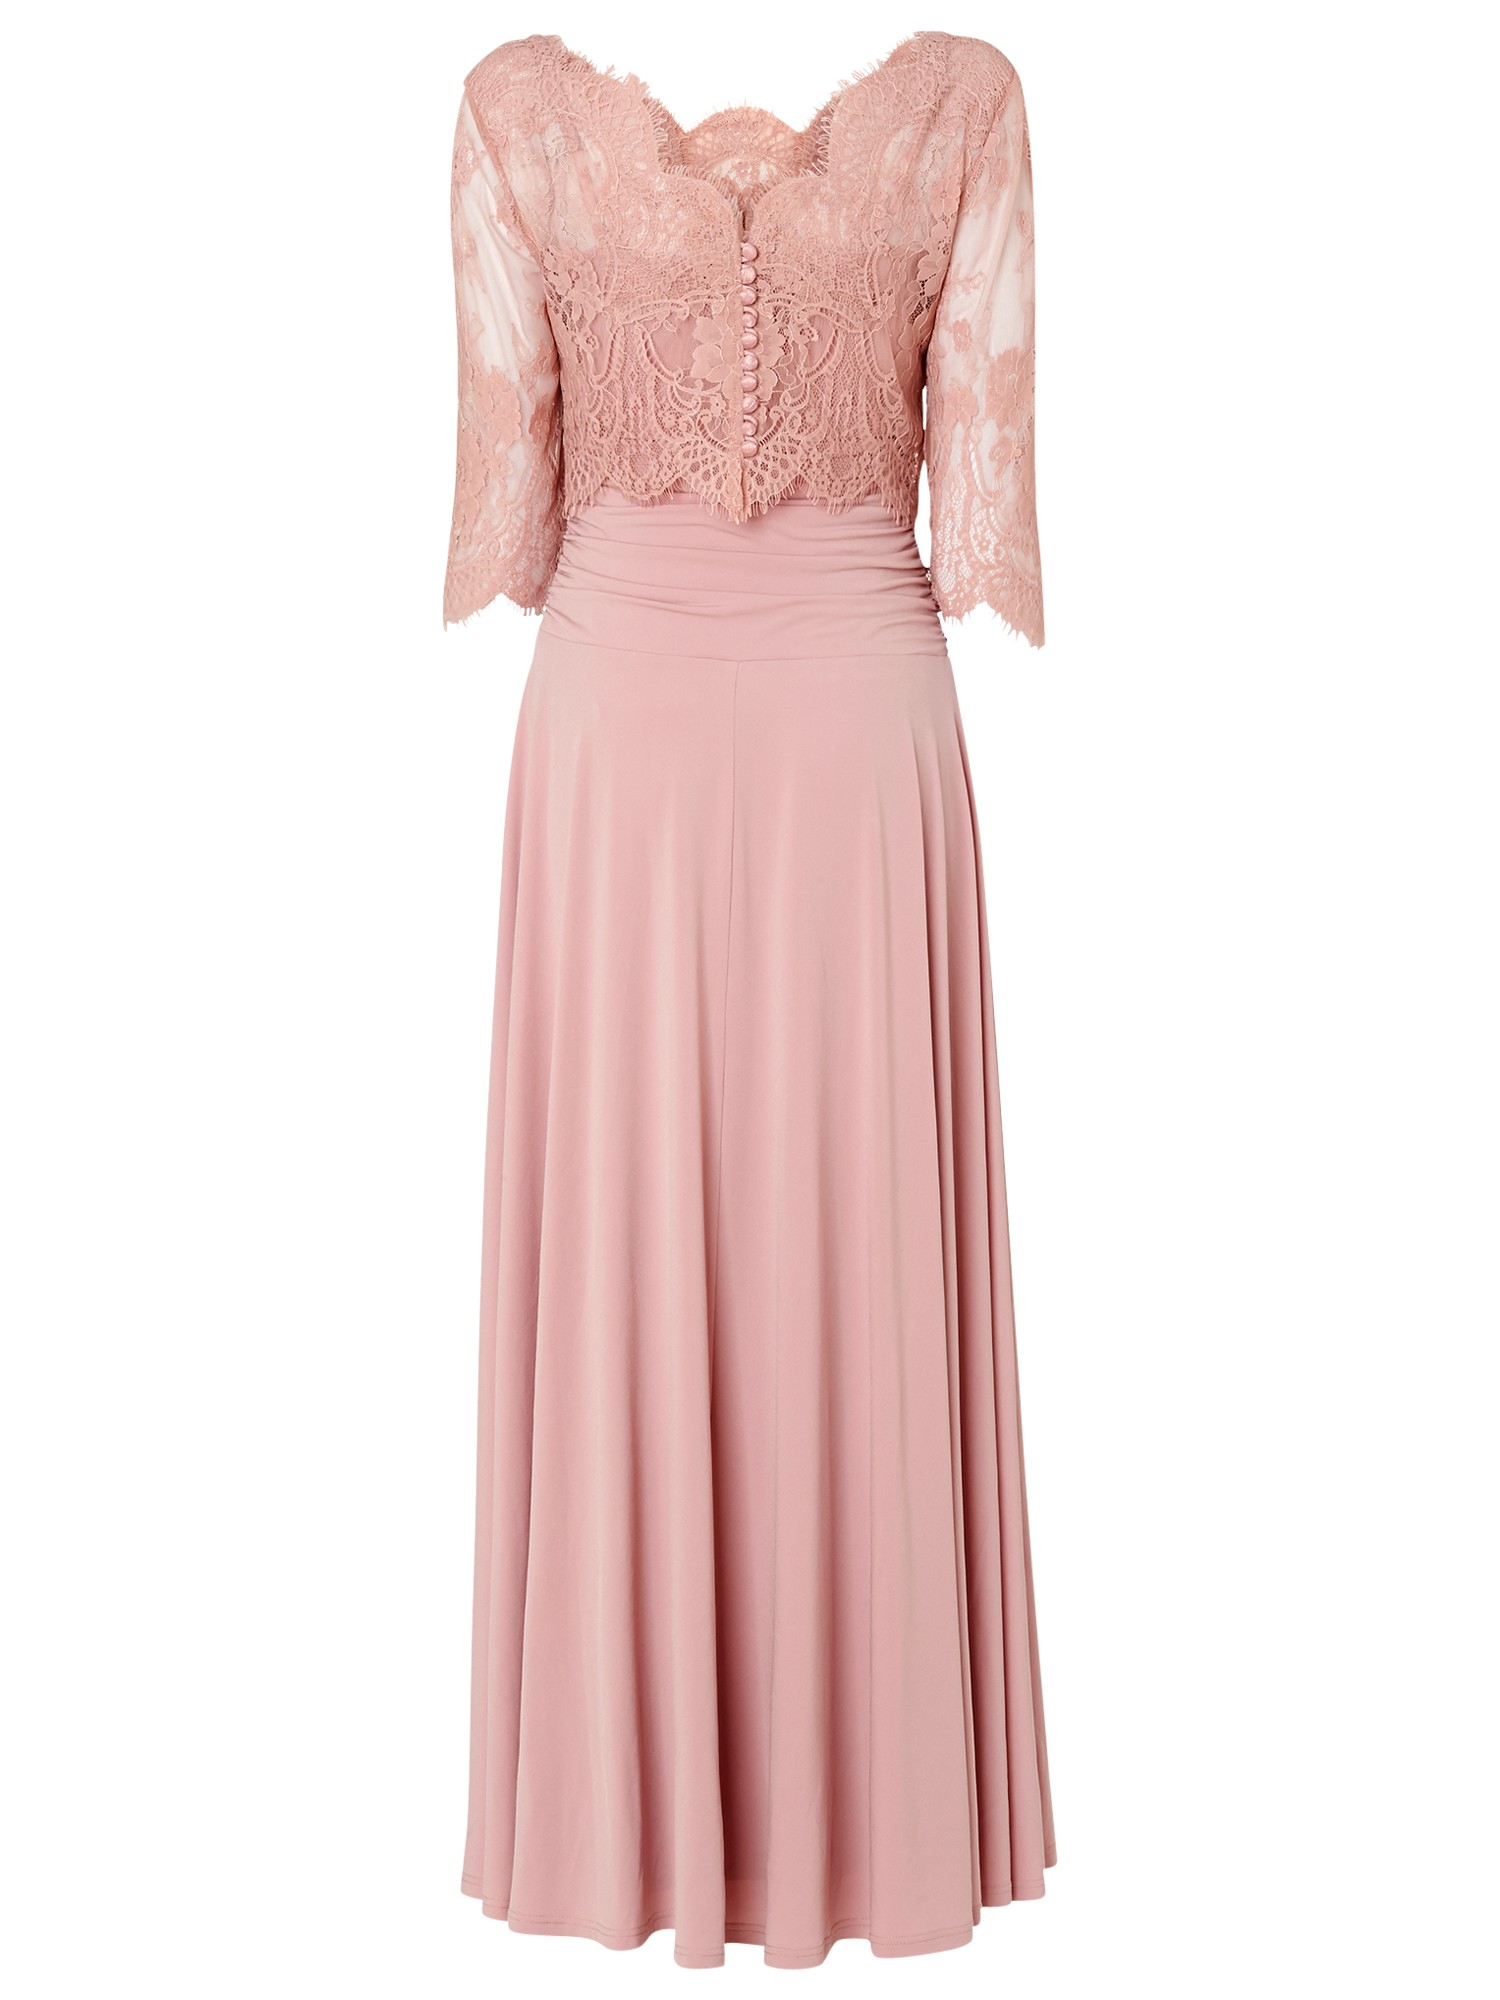 Phase Eight Romily Maxi Dress In Pink Lyst